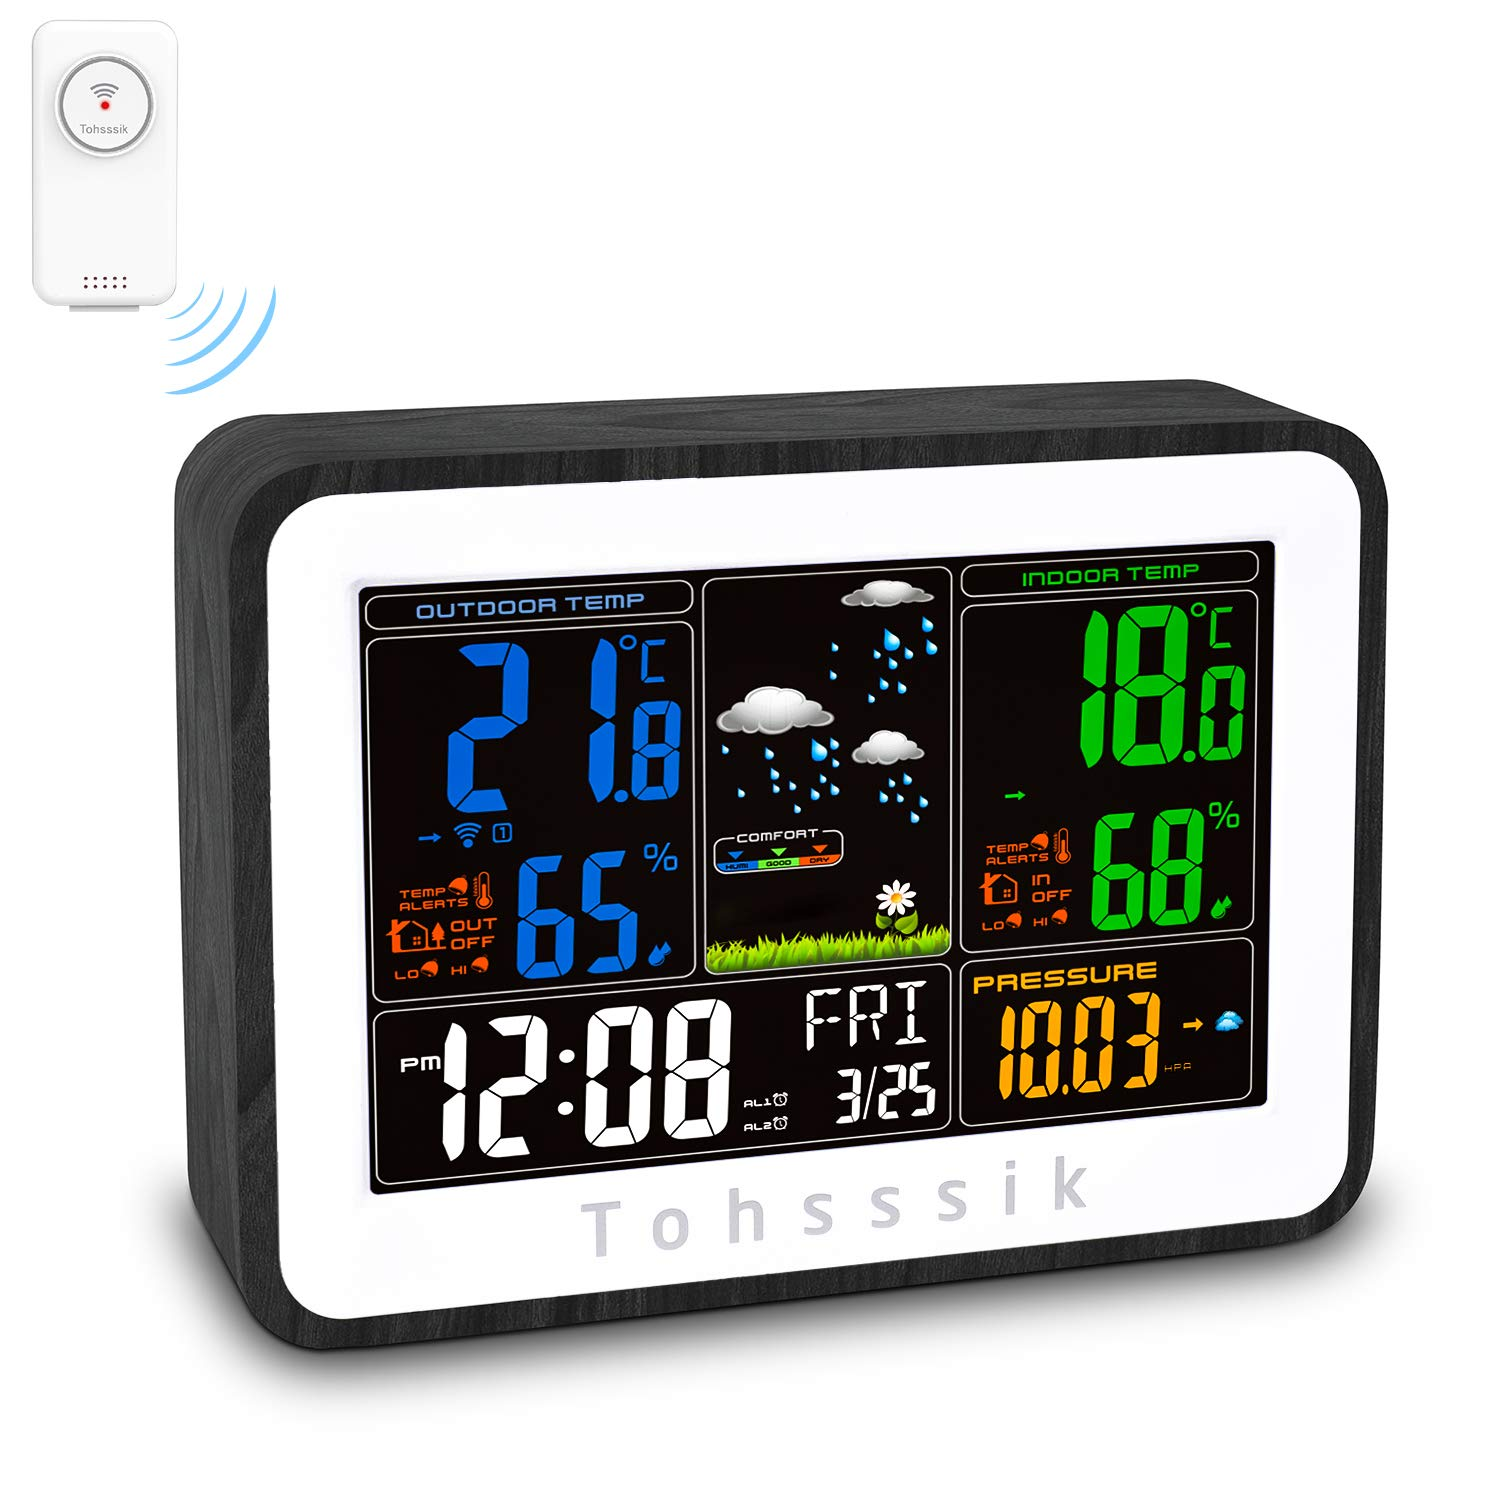 The 10 Best 433Mhz Wireless Weather Station Forecast ...